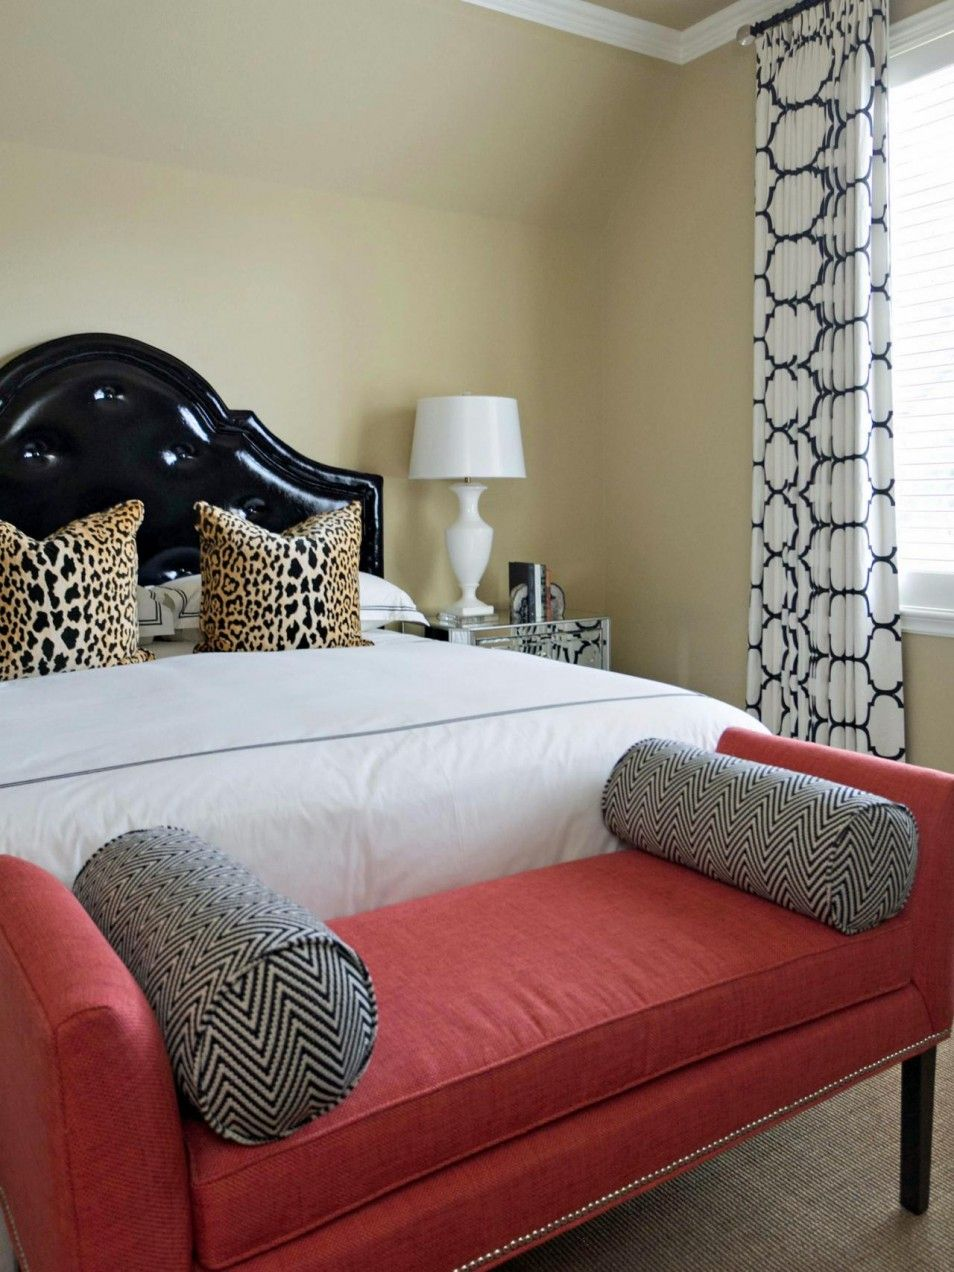 Create A Gorgeous Room Bedroom Decorating Ideas In Leopard ... on black white bedroom themes, black white bedding, men bedroom design ideas, black white modern bedroom, black and white decorating tips, black white gardening, black and white home decor ideas, black white books, black white dining, black white paint ideas, modern bedroom design ideas, black white kitchen, black and white bedroom, black white bedroom sets, black white photography, black white brown bedroom, black and white rooms, black white halloween, black white bathroom, white and teal bedroom ideas,